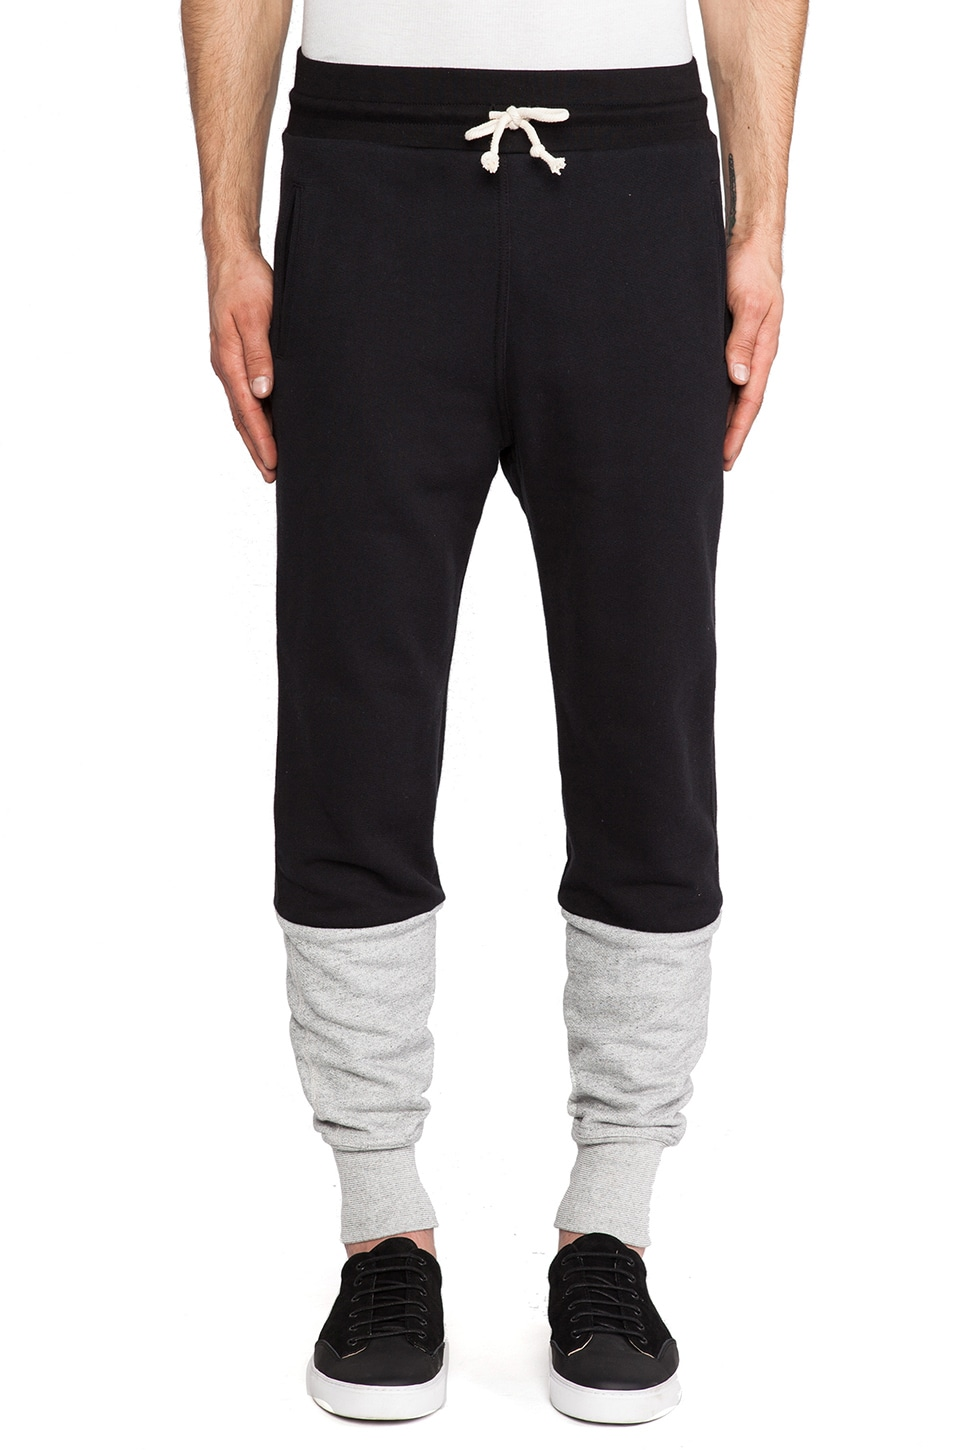 JOHN ELLIOTT Lima Sweatpant in Duo Black